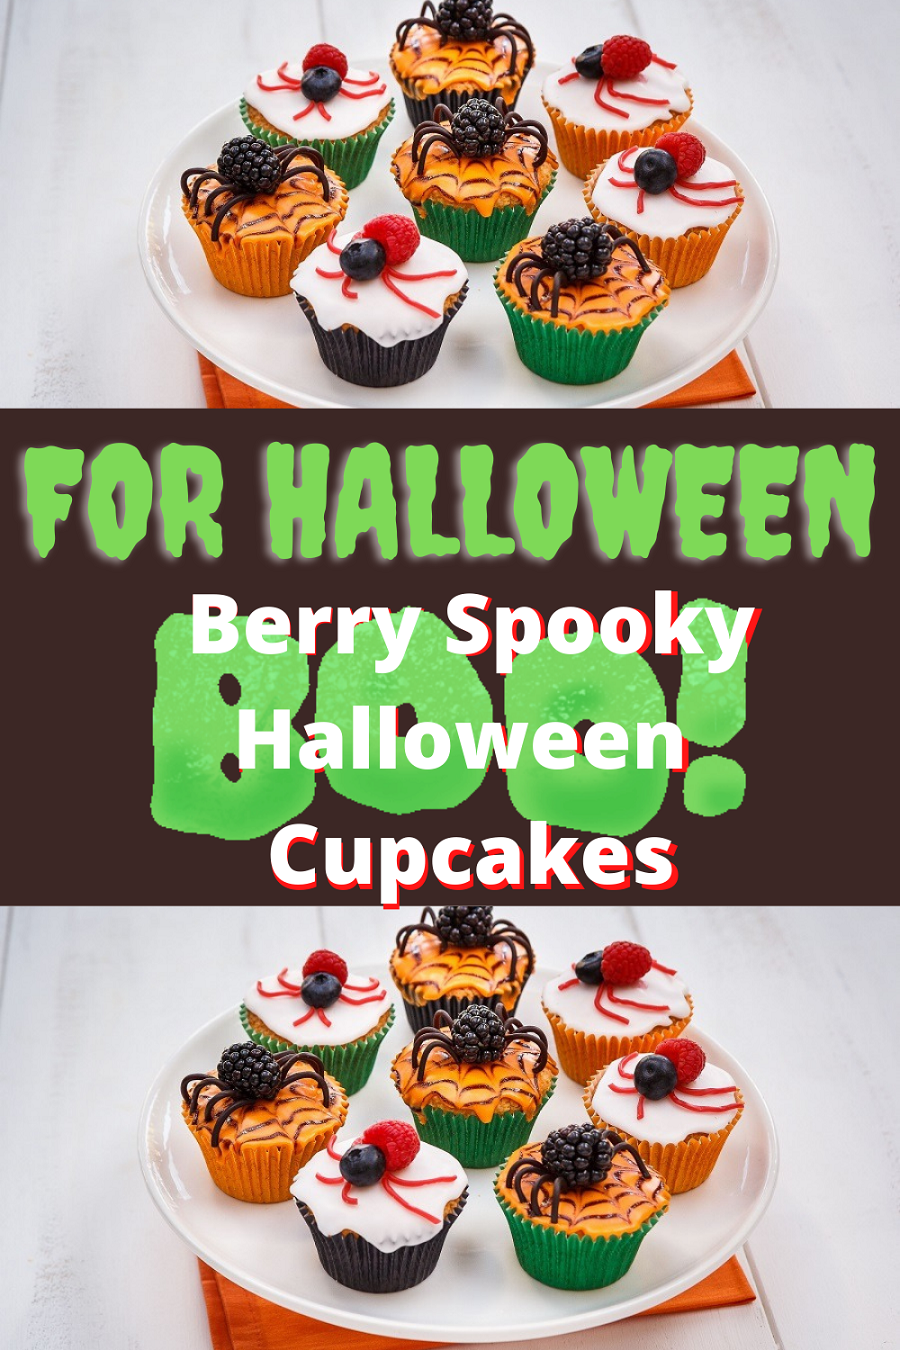 Berry Spooky Halloween Cupcakes: Scary Party Food